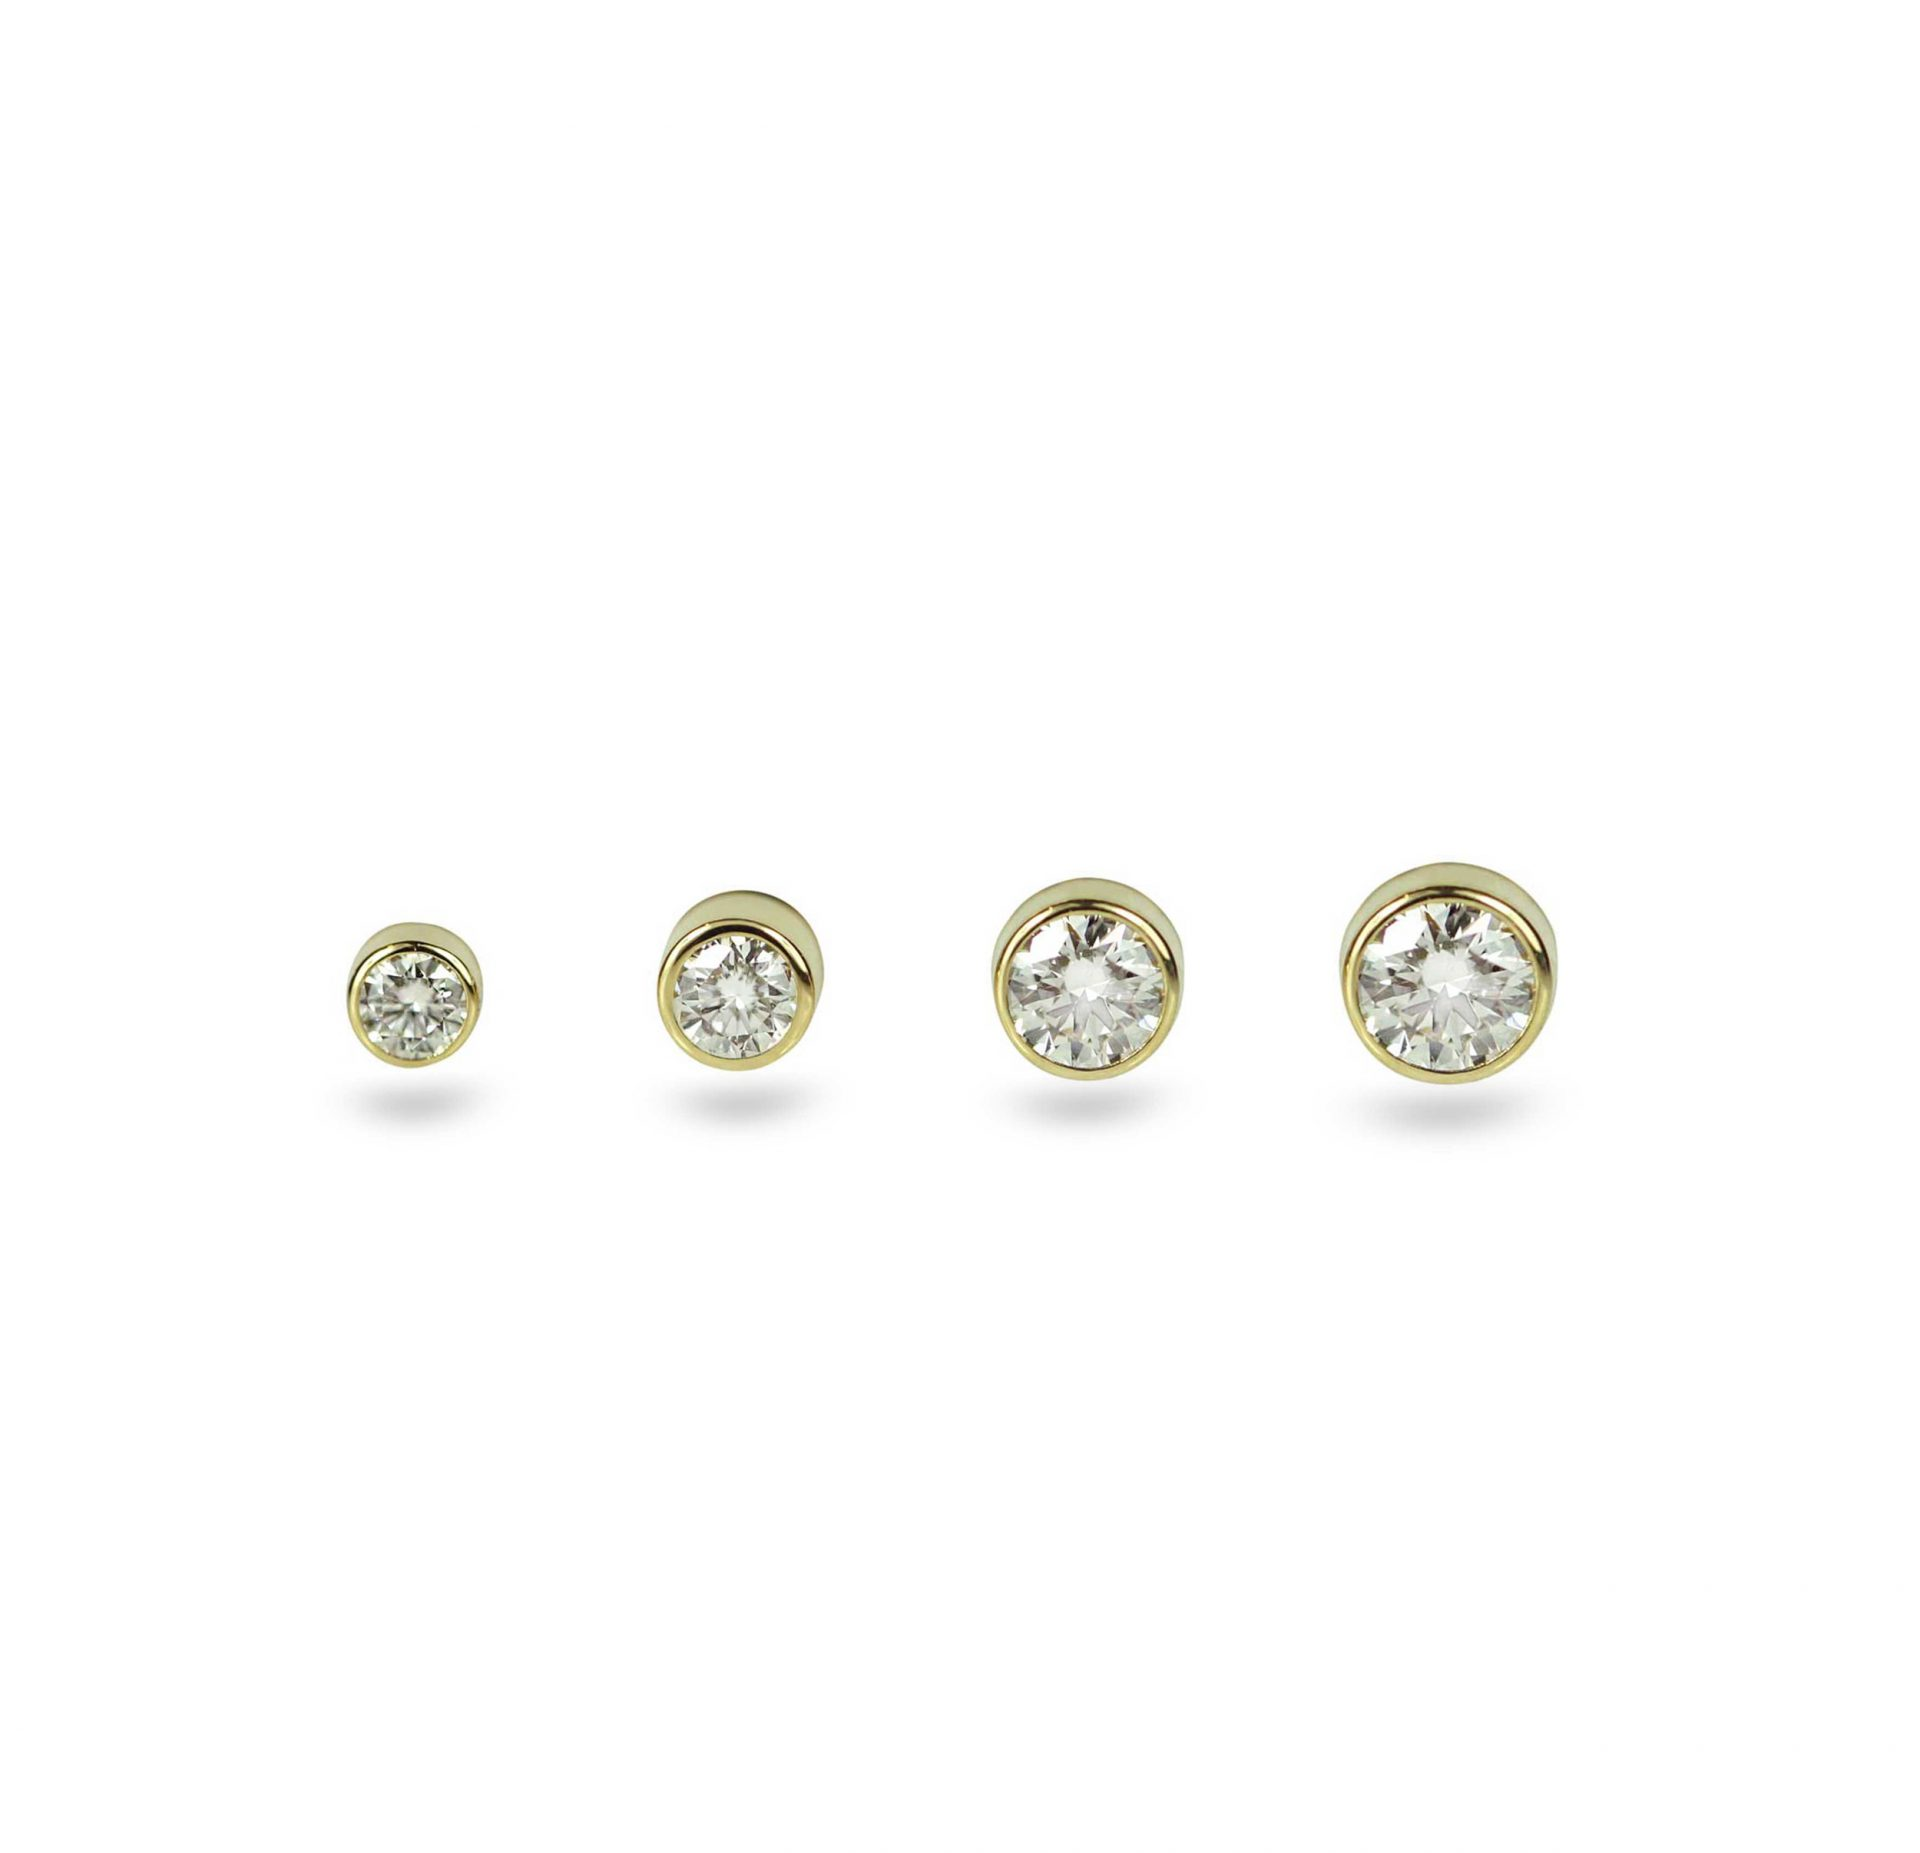 diamond-piercing-studs-screw-backs-gold-buy-online-lena-cohen-uk